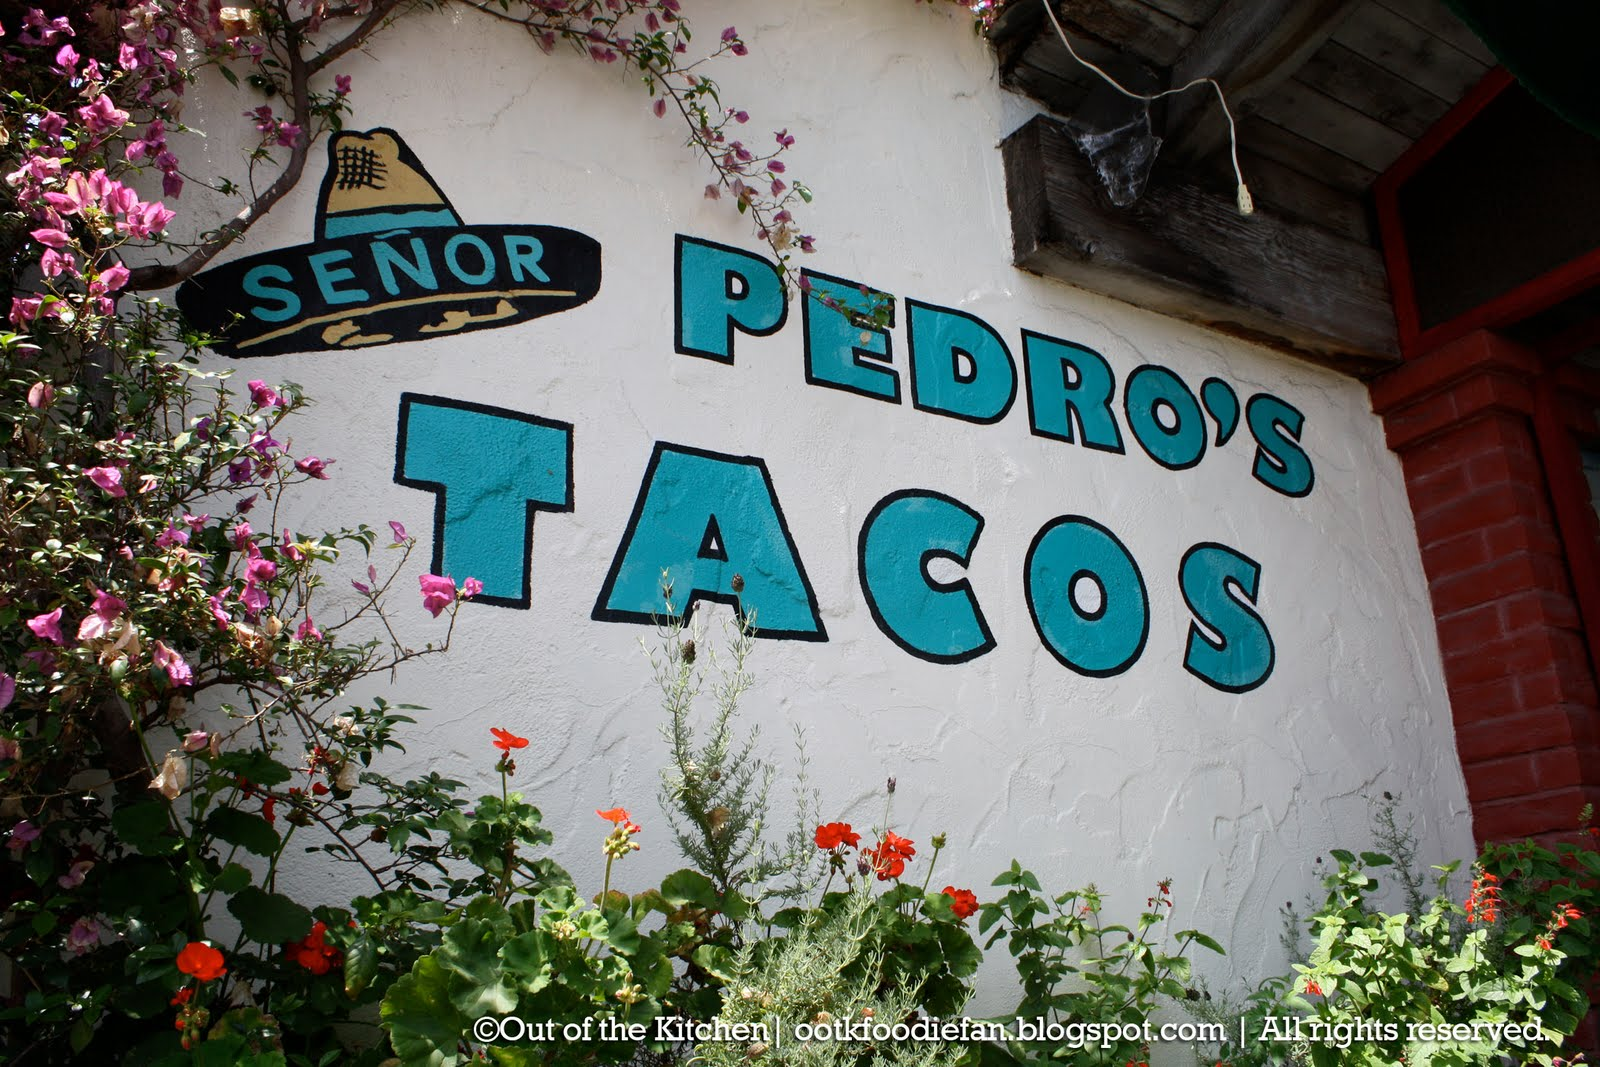 Out of the Kitchen - Food Adventures: Señor Pedro\'s Tacos | San Juan ...